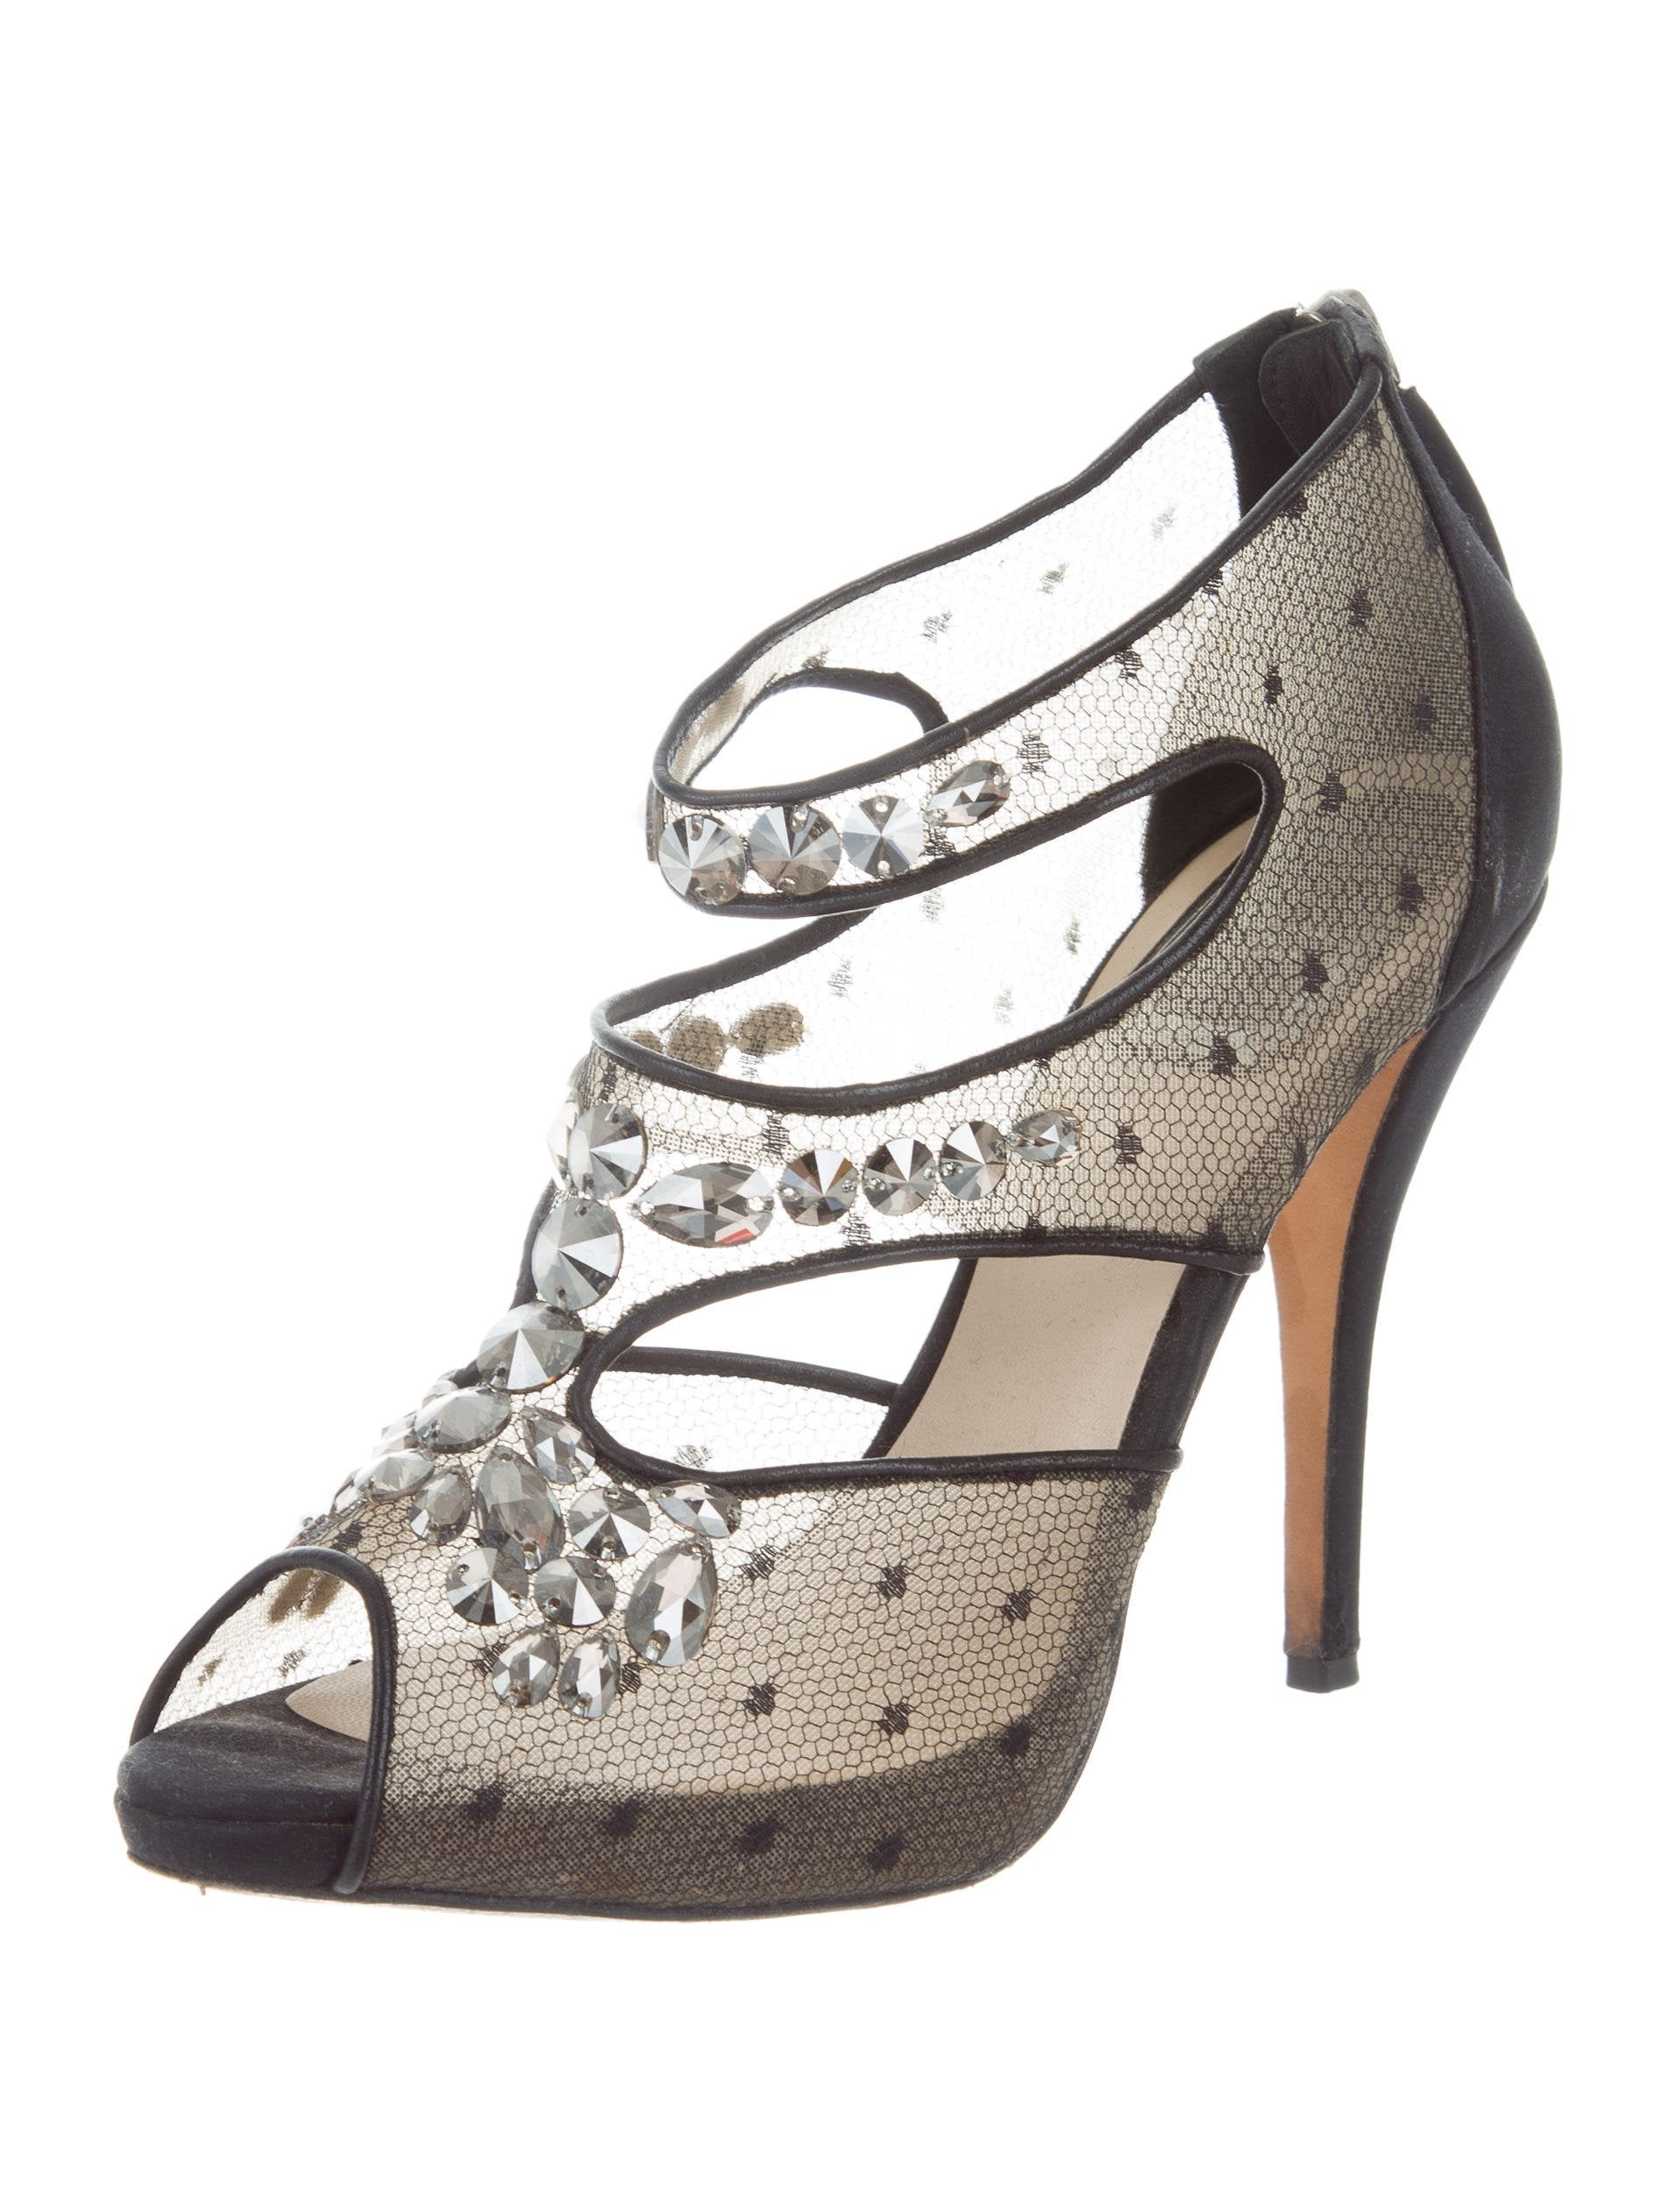 cheap Christian Dior Mesh Jewel-Embellished Pumps low shipping online cheap order discount find great free shipping marketable Gm867m1a